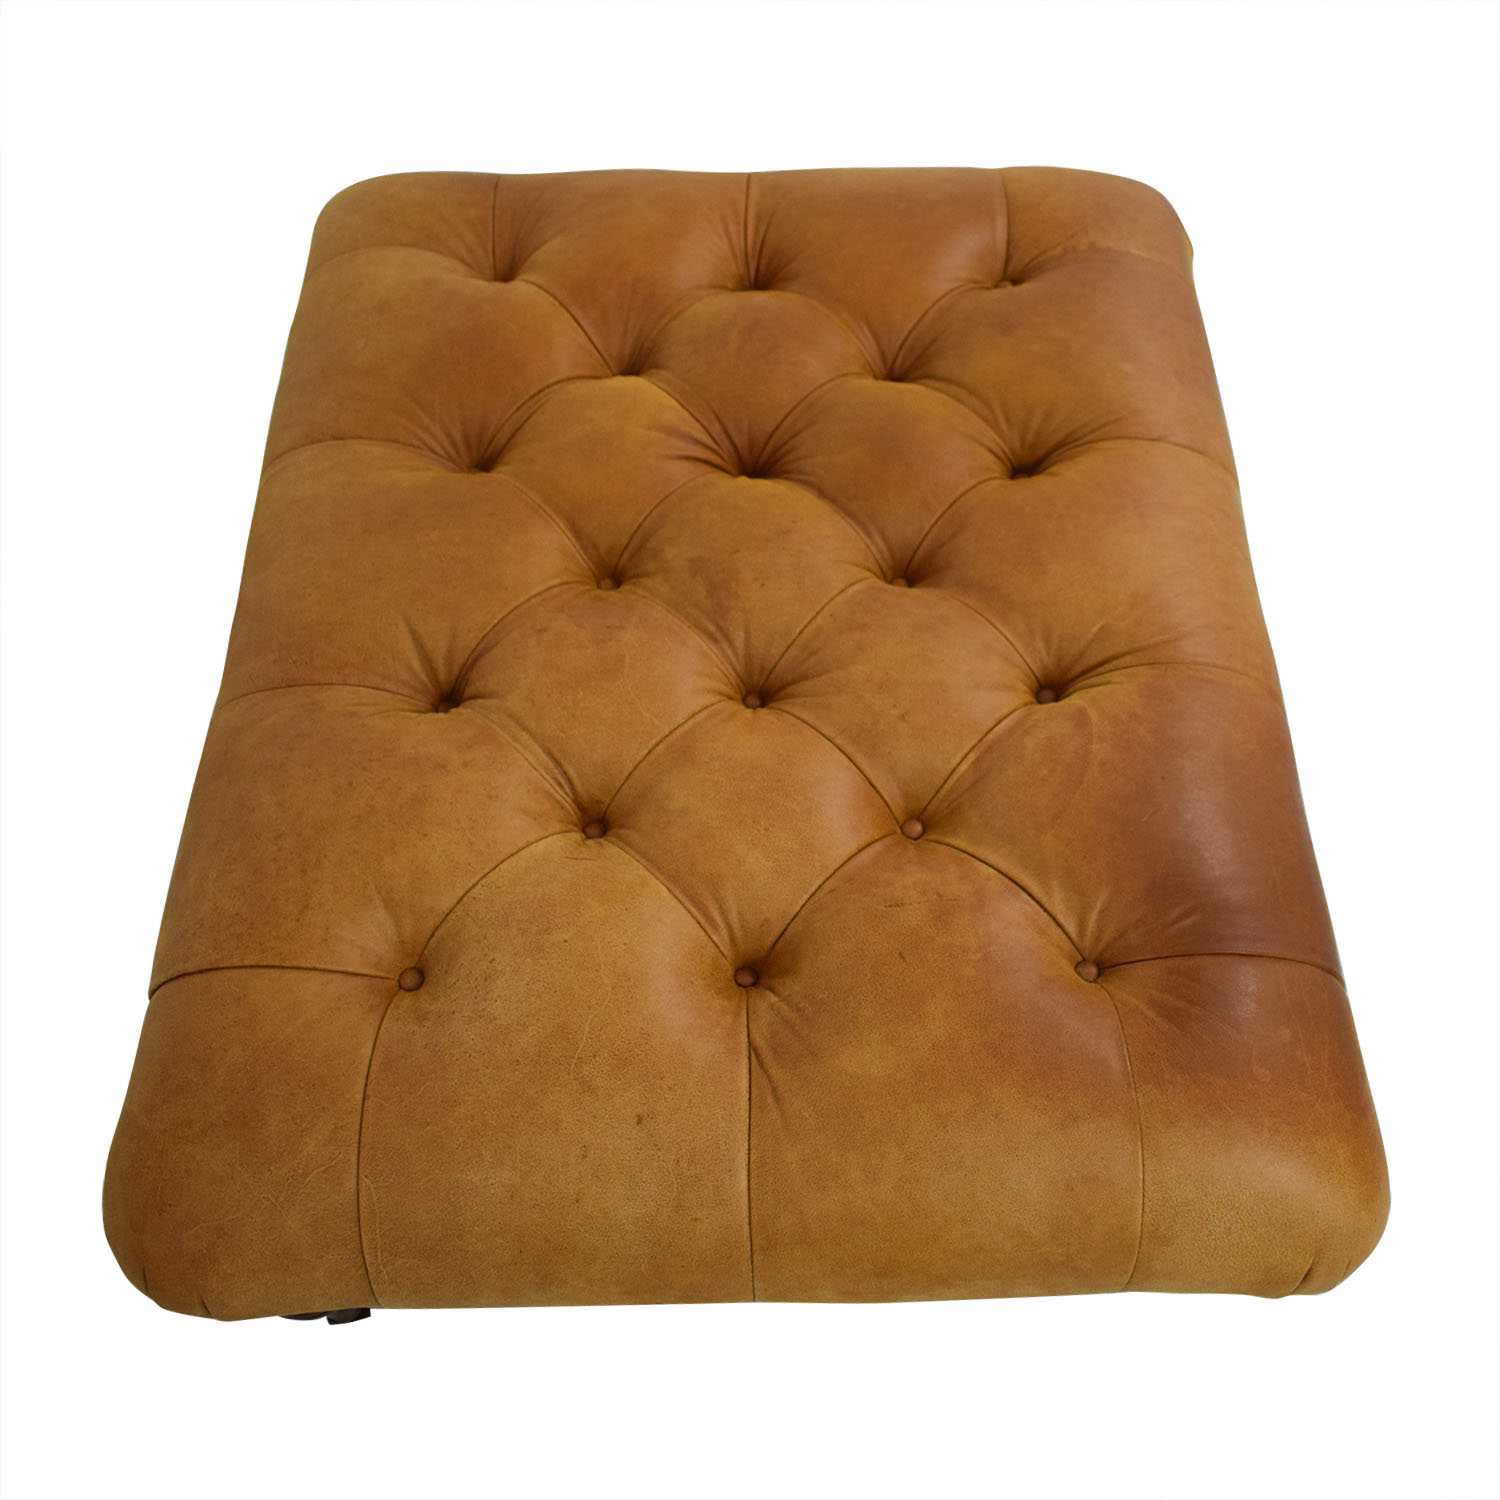 shop Laura Ashley Radley Leather Ottoman Laura Ashley Chairs